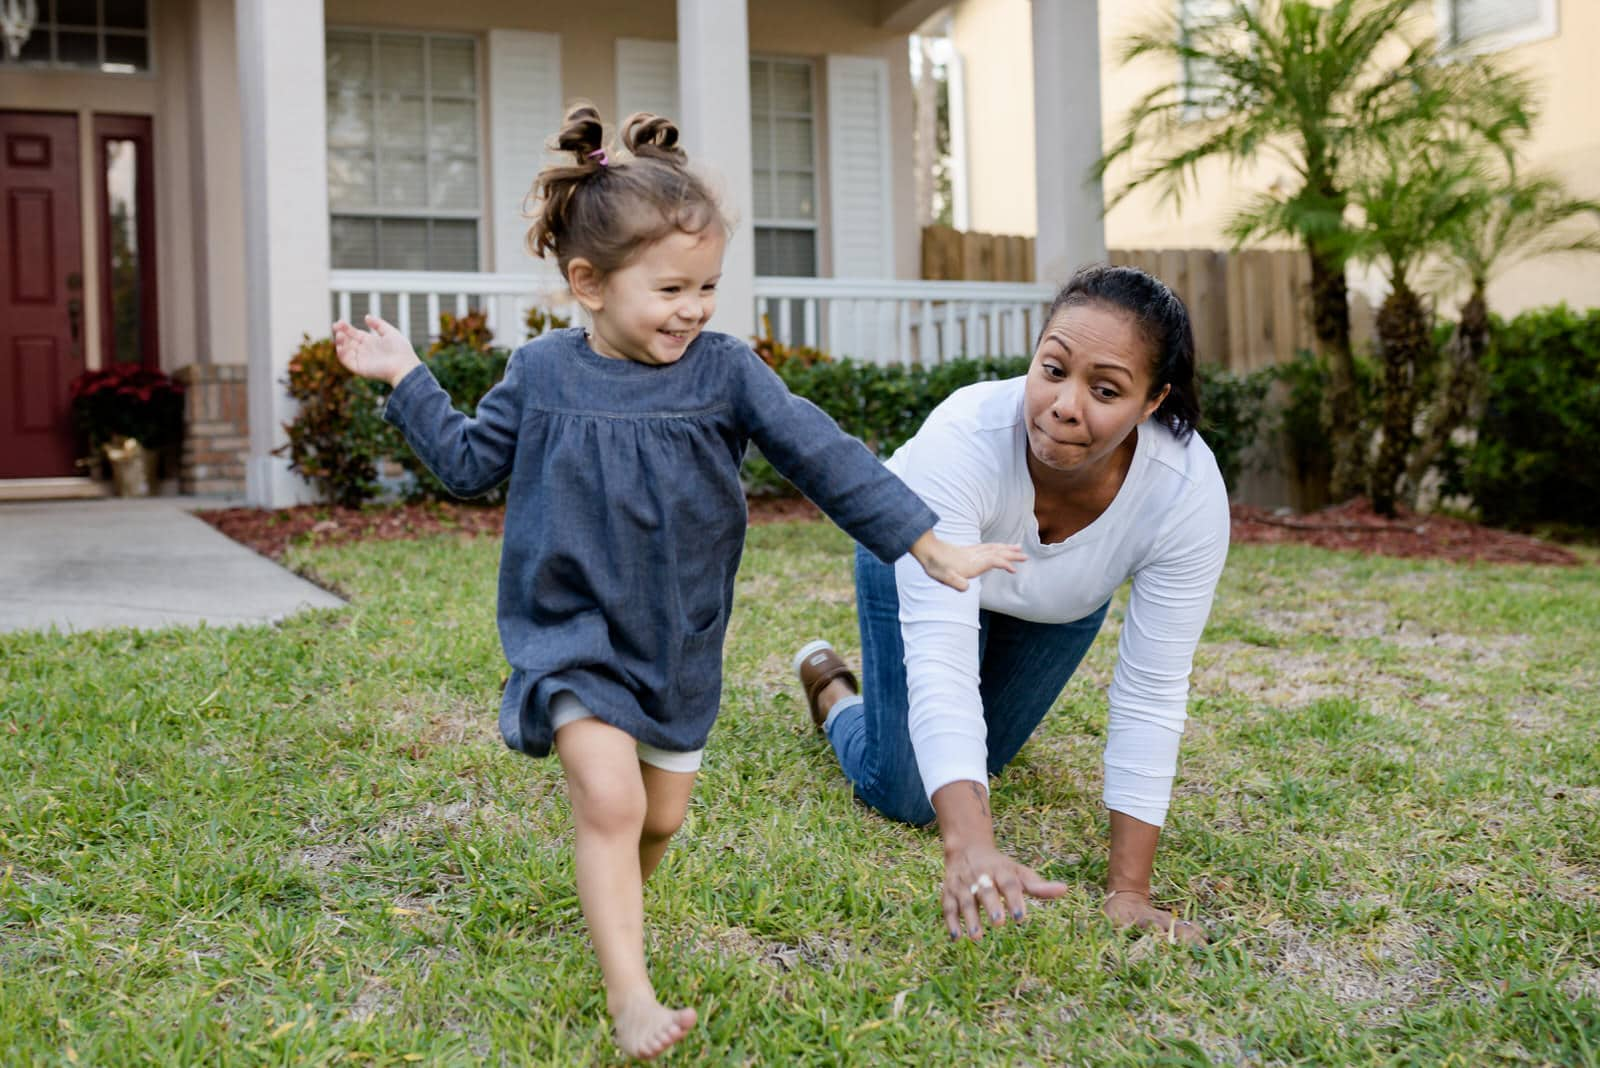 daughter and mom play in front yard